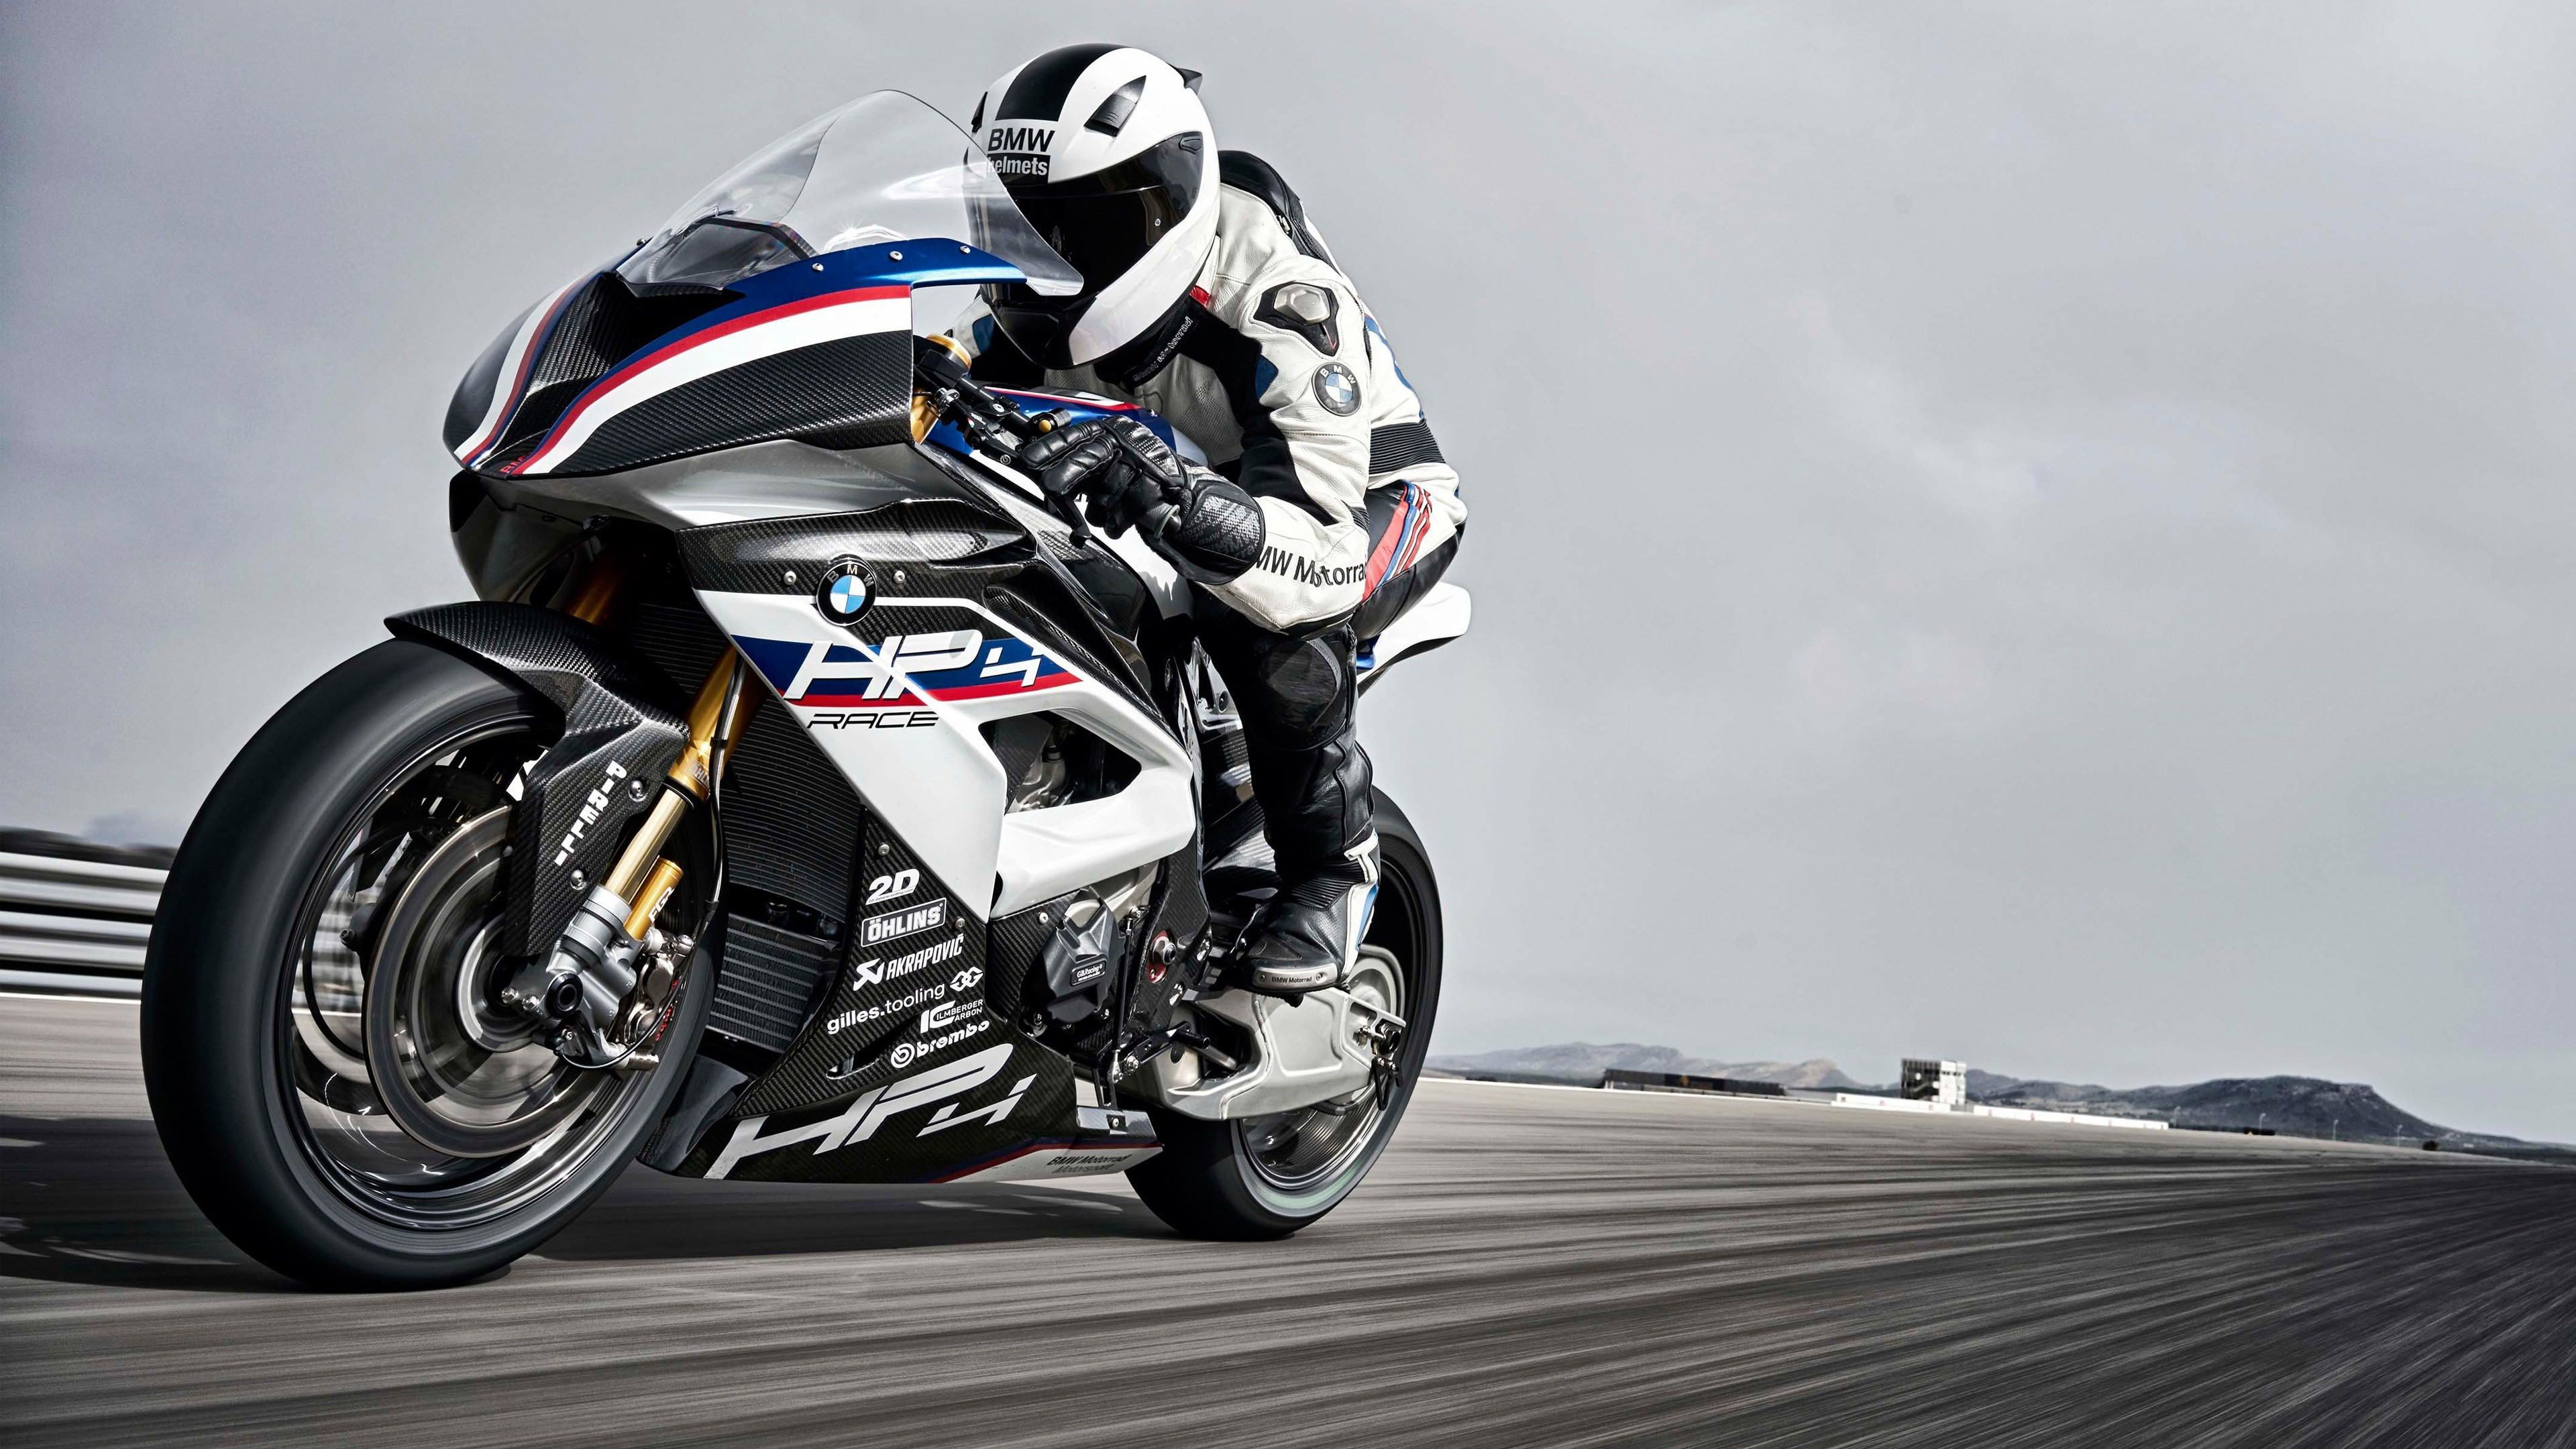 BMW HP4 wallpaper 3840x2160